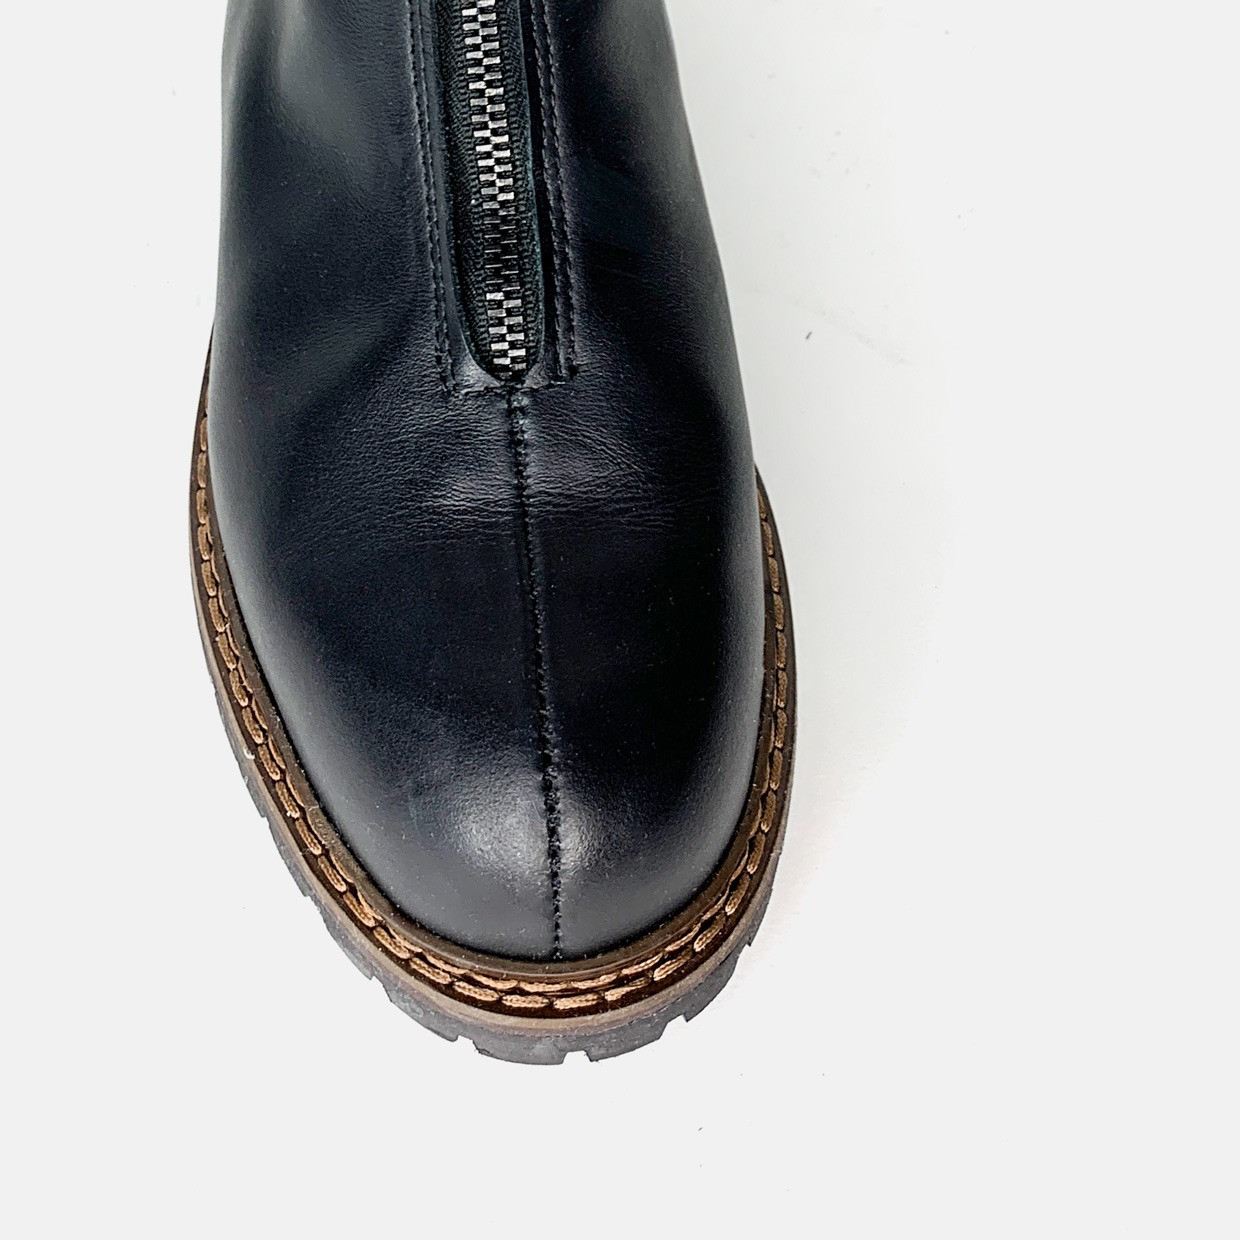 The WHATEVER ZIPPED boots